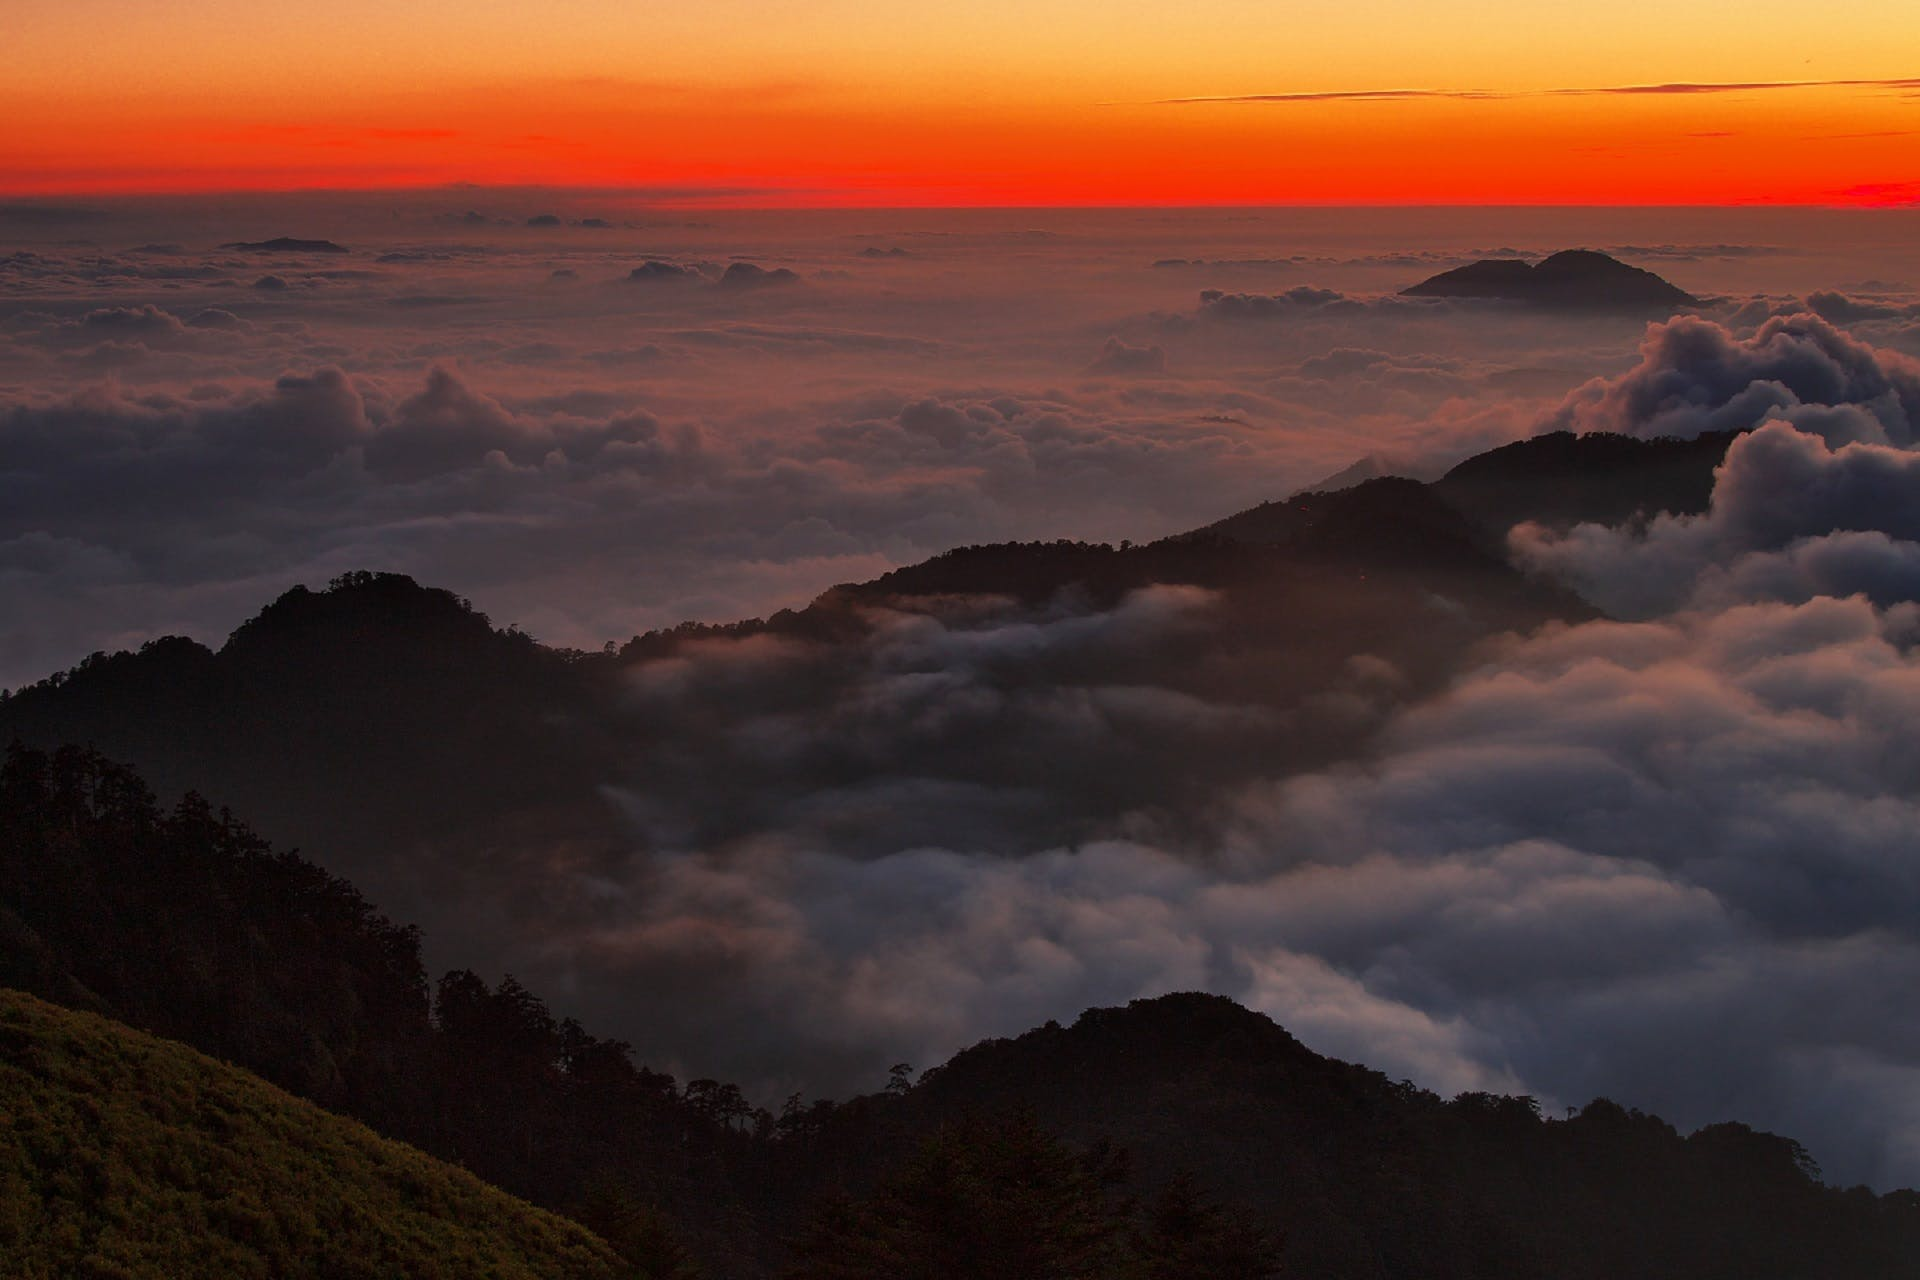 High View Photography of Mountain Ranges Surrounded With Clouds at Golden Hour